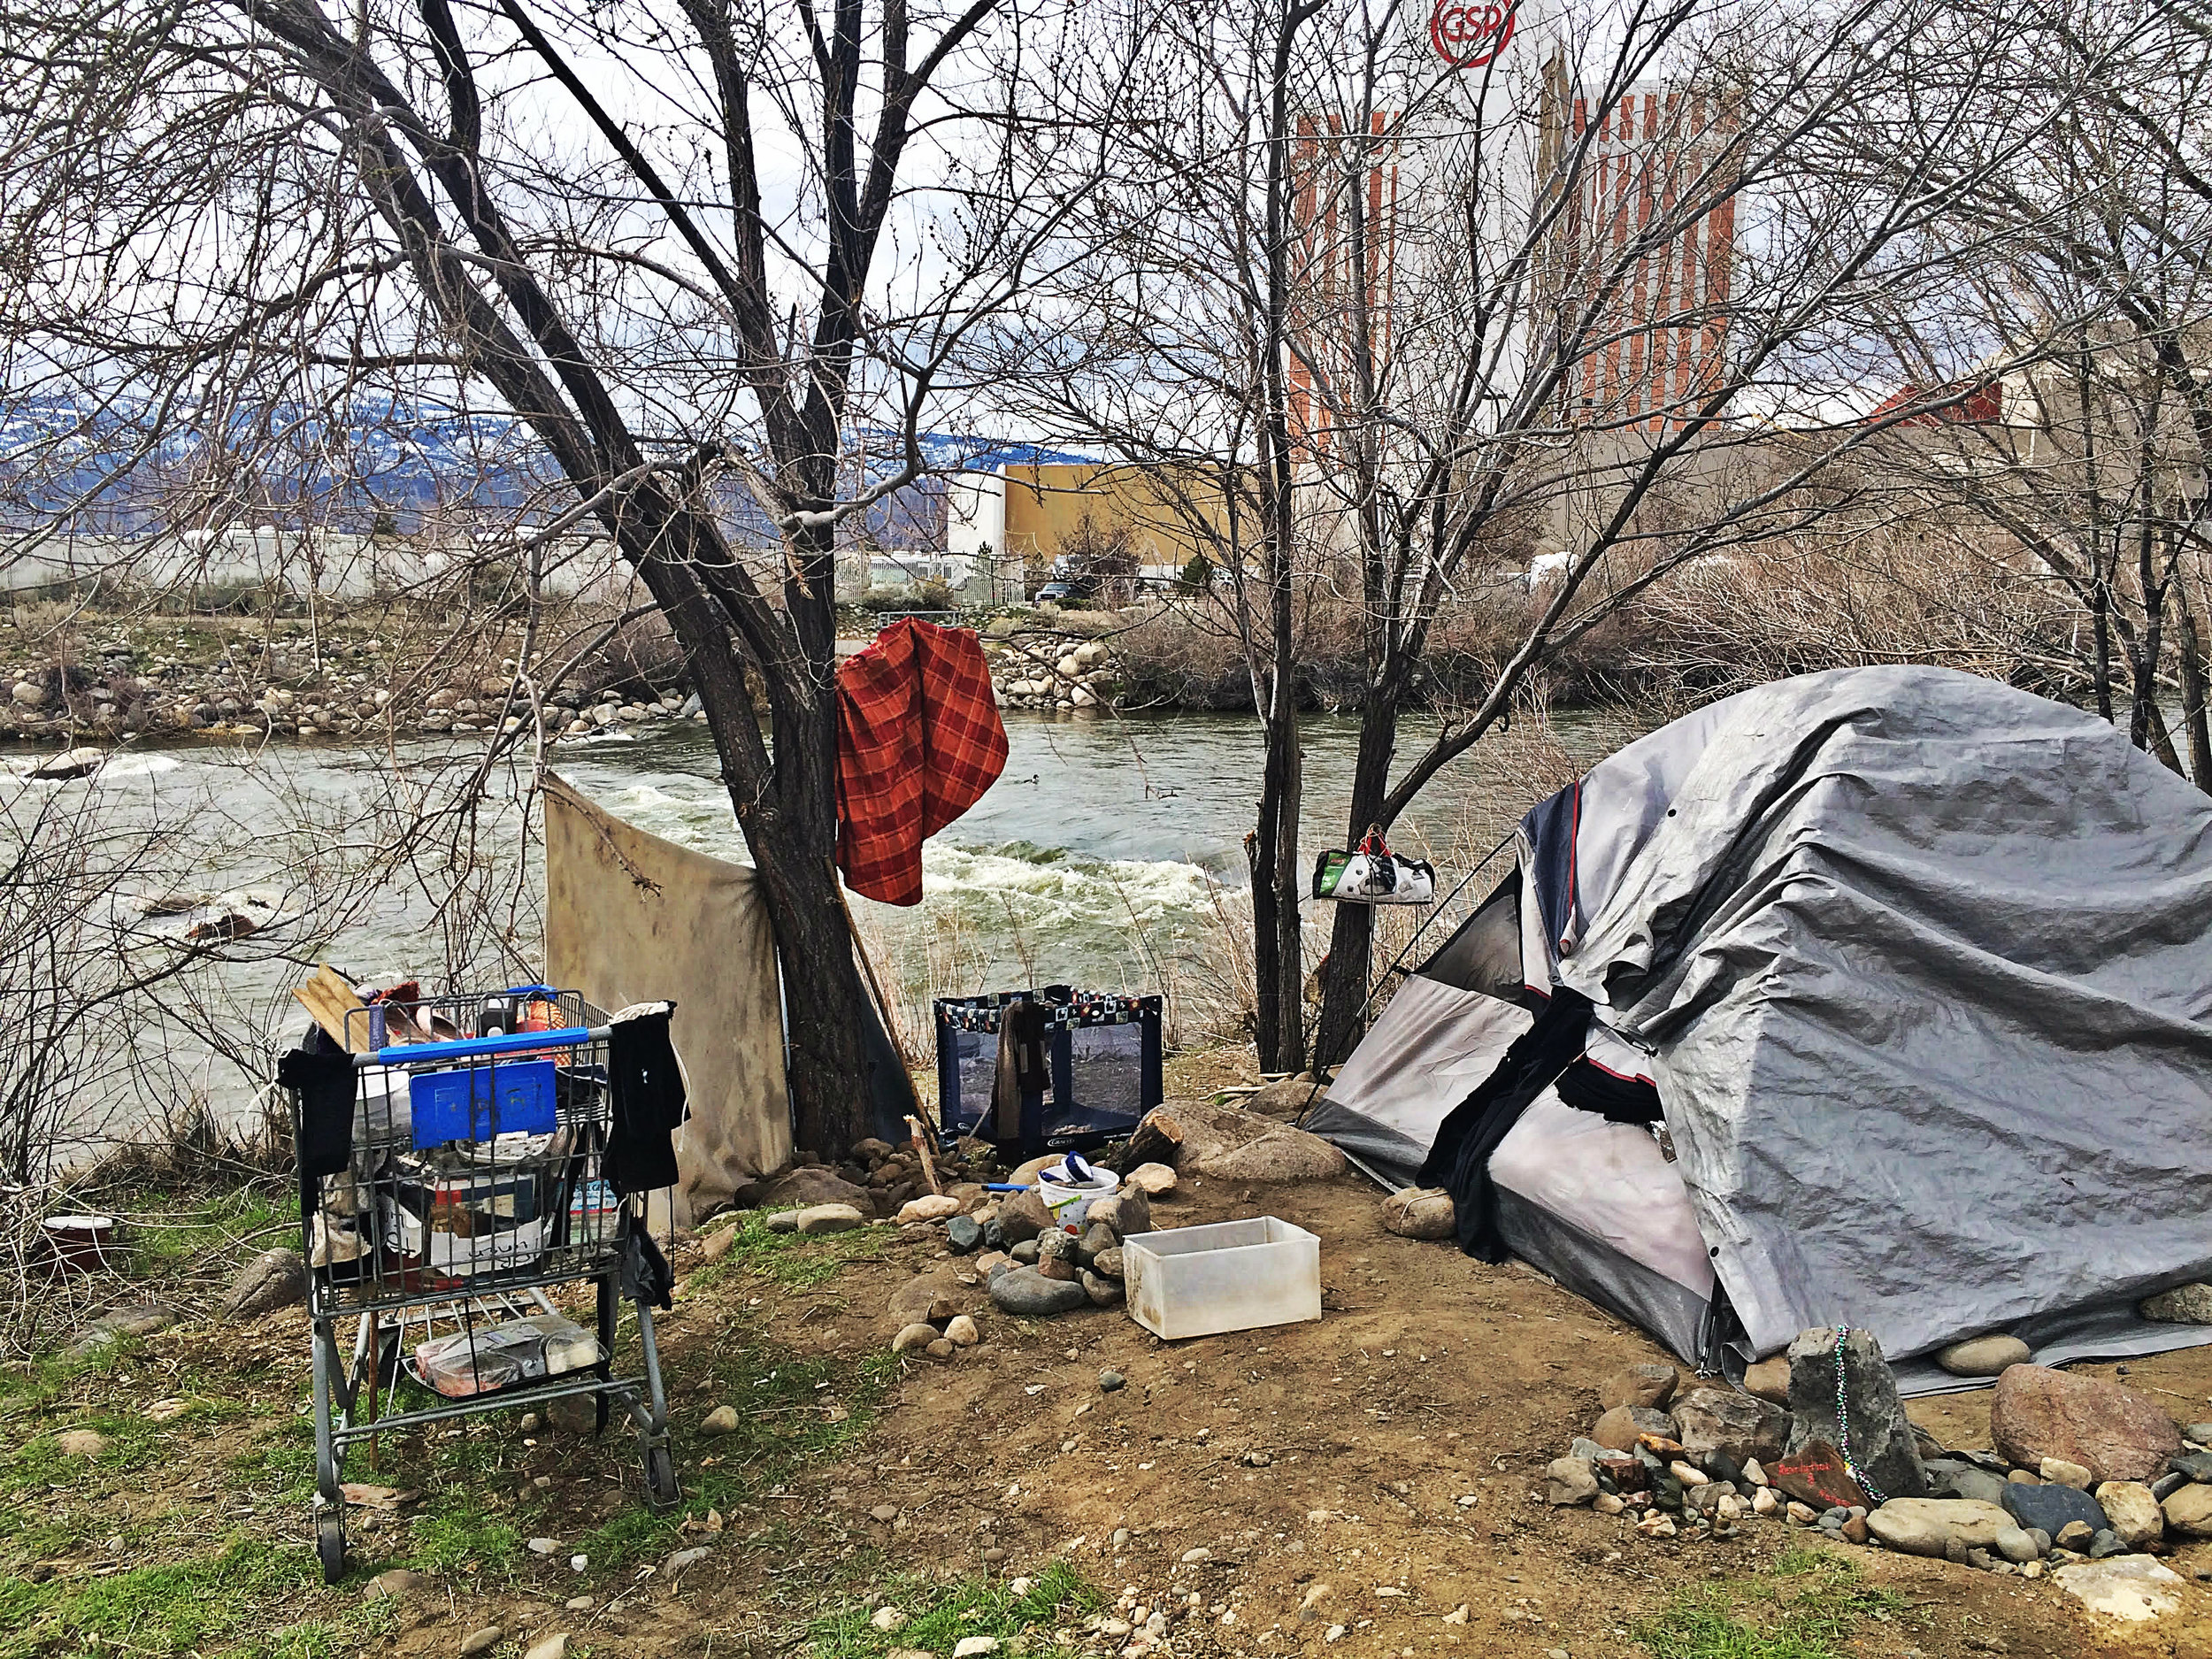 Authorities in Sparks are considering shutting down this encampment site, which keeps reappearing, along the Truckee River. Photo by Monica Gomez